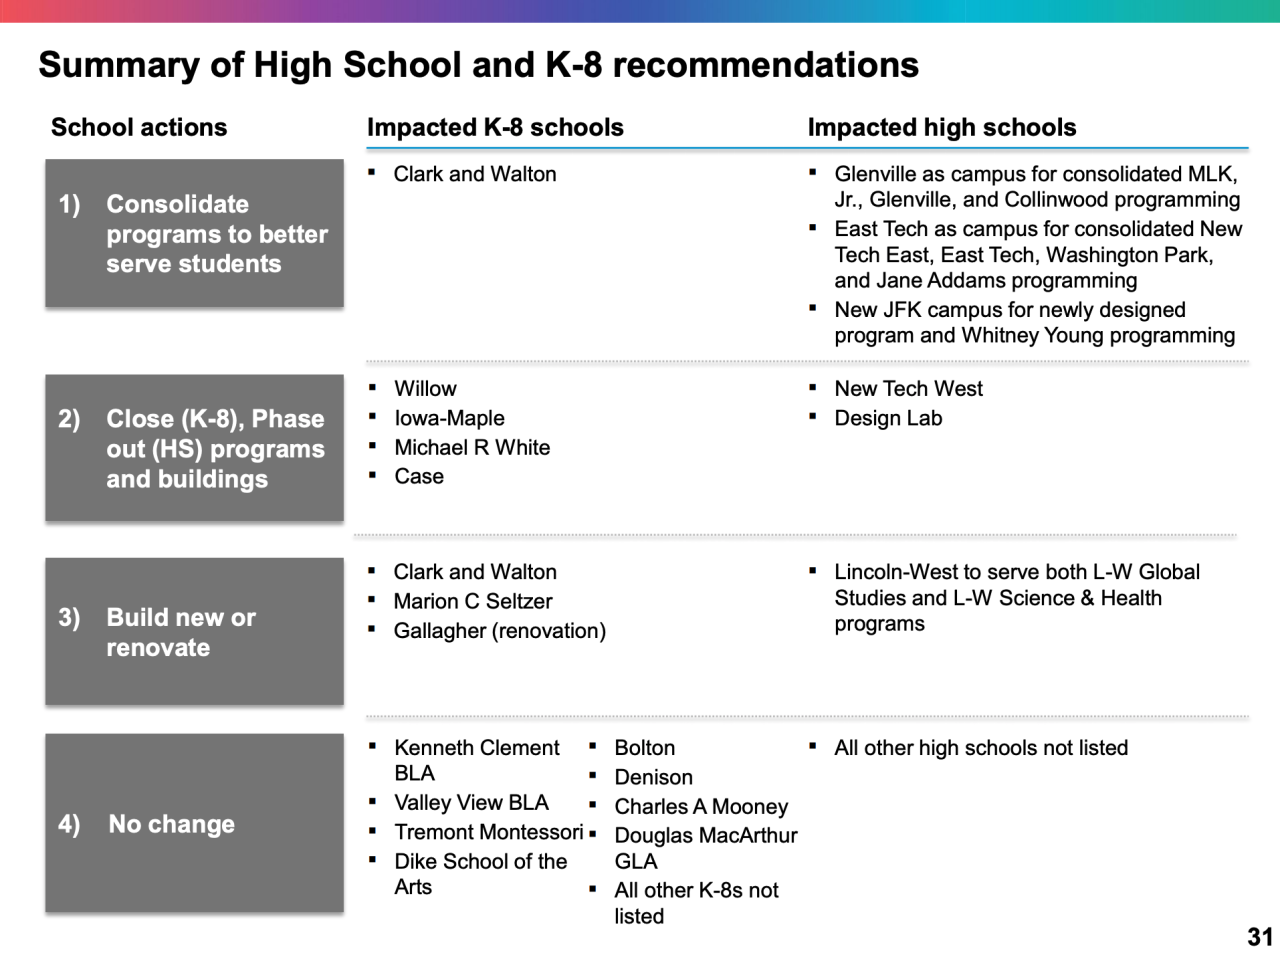 CMSD recommendations